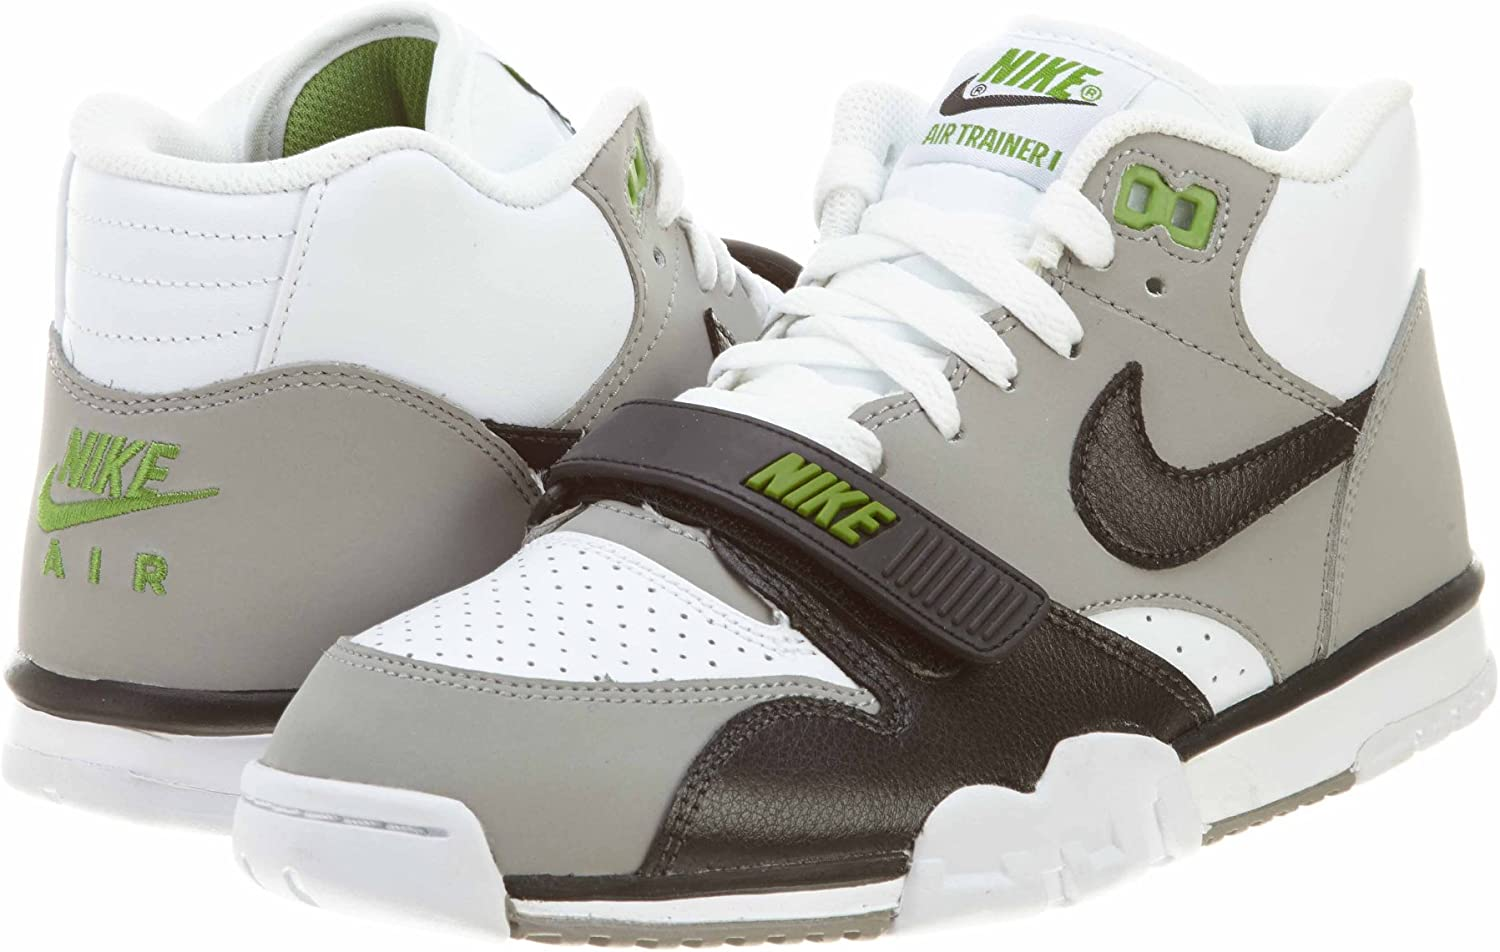 Dios Pila de Incorrecto  Amazon.com: Nike Air Trainer 1 Mid Premium blanco/neutral gris/Clorofila/Negro  317553 – 100, Blanco, 13 D(M) US: Shoes